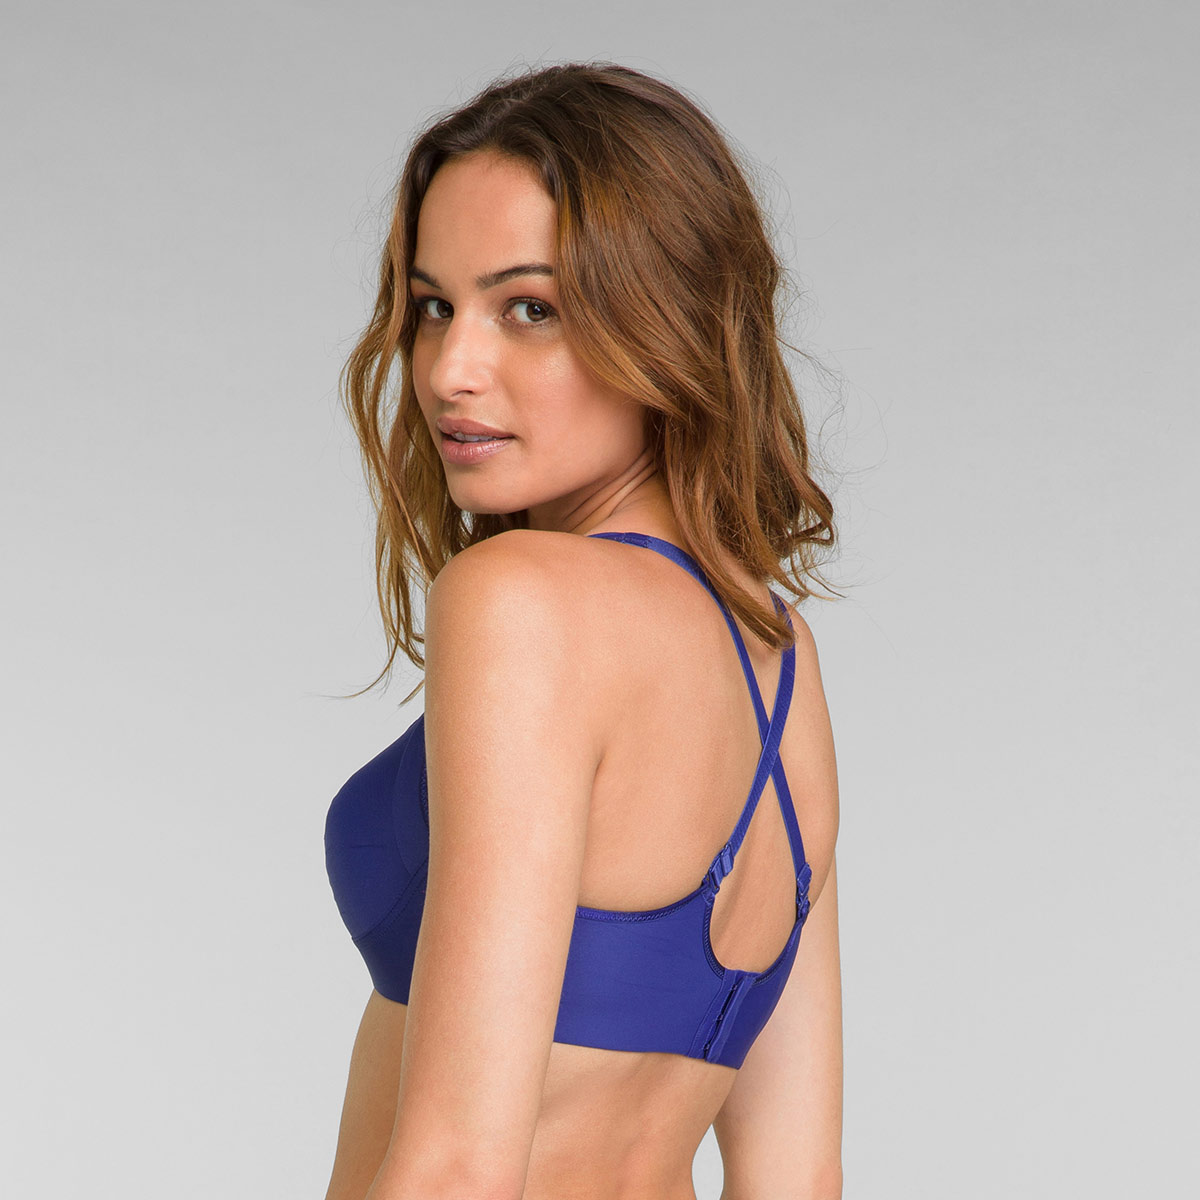 Soutien-gorge sans armatures bleu intense Feel Good Support, , PLAYTEX